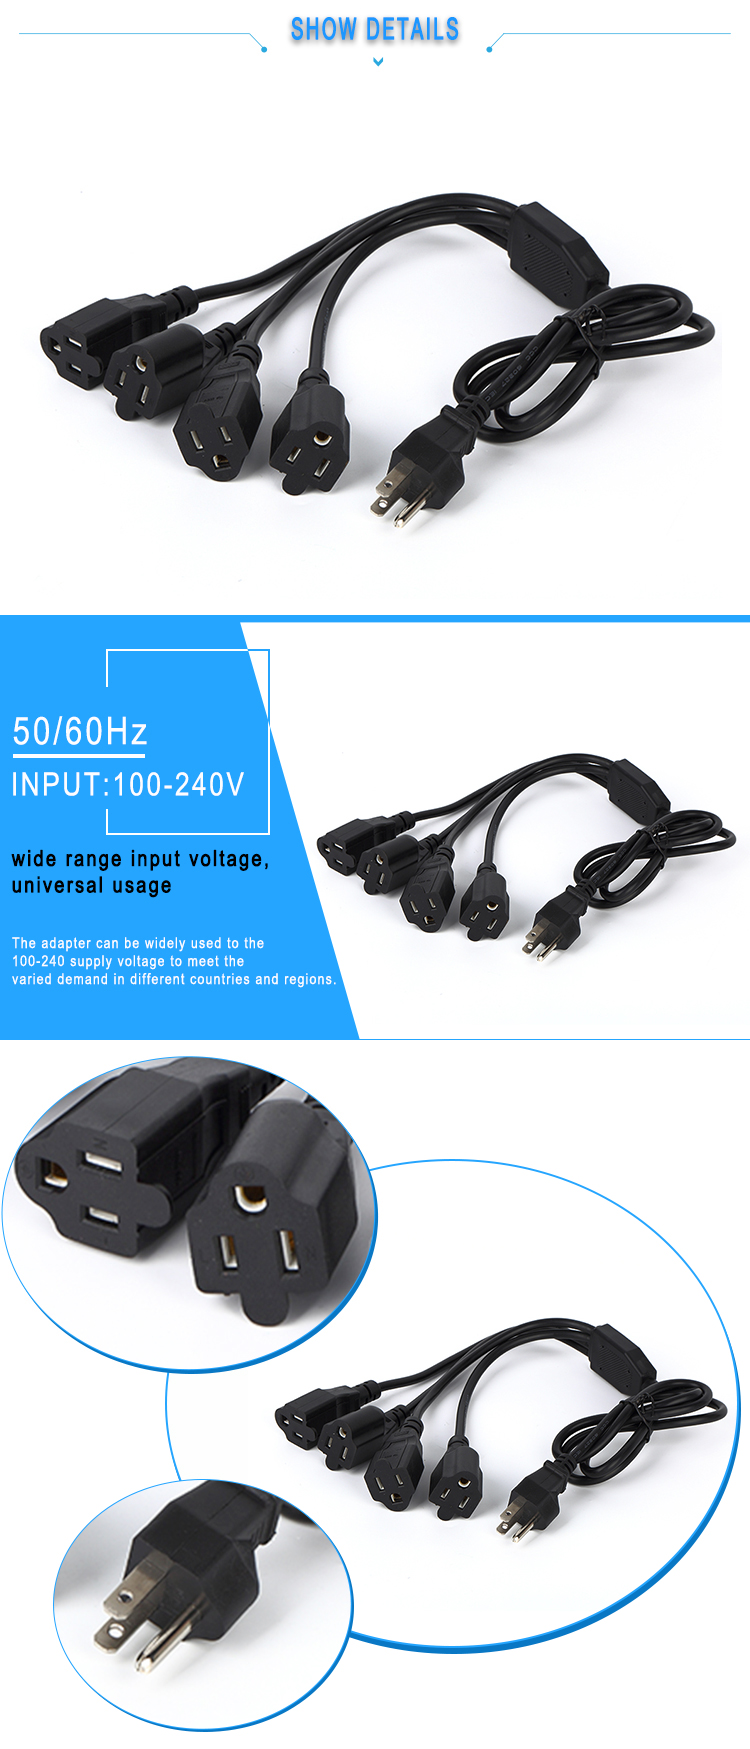 1 to 4 power cord splitter